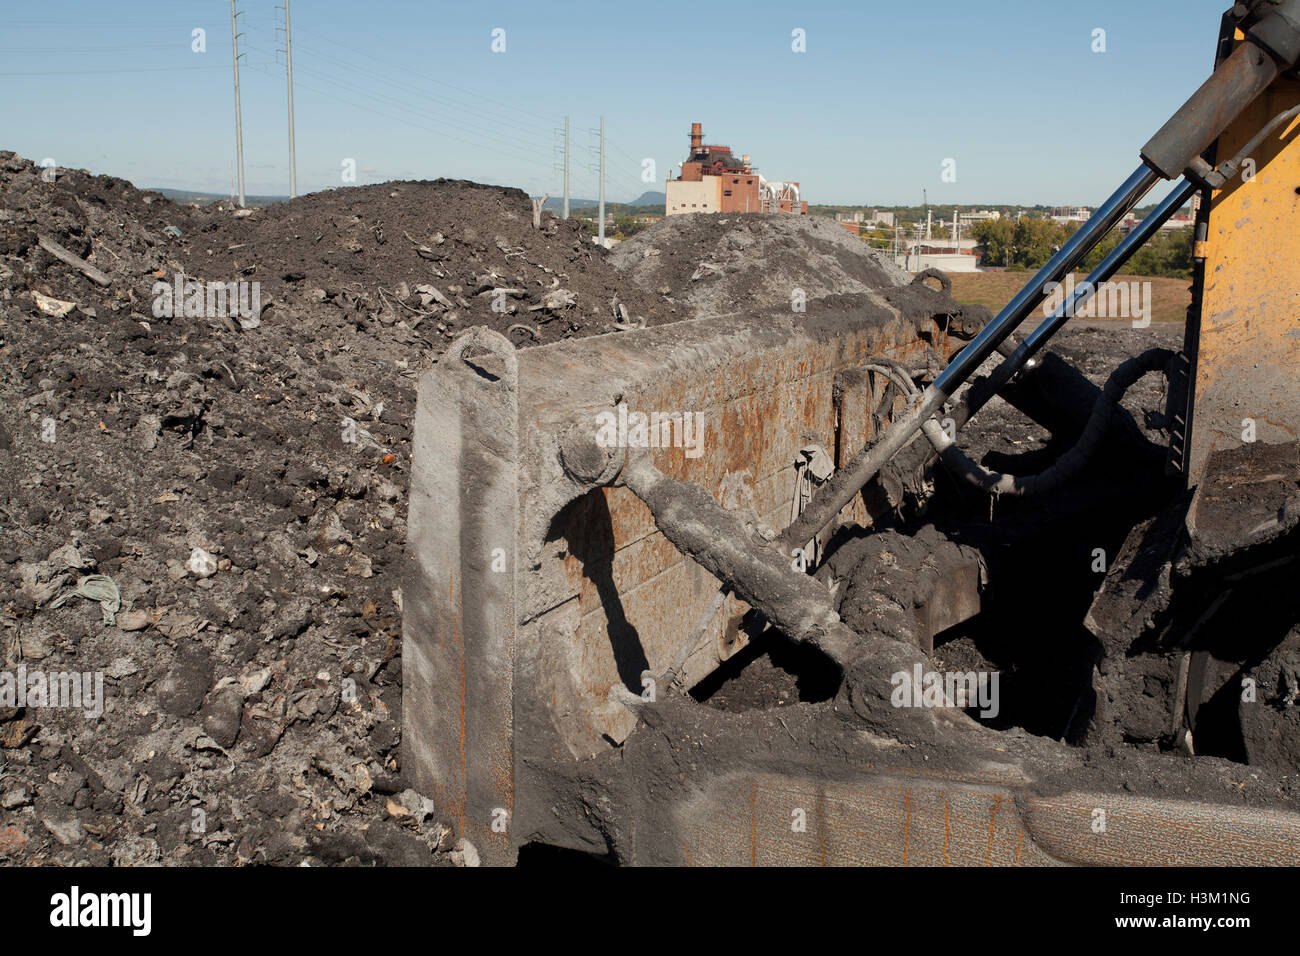 A heap of ash and debris from burned trash at a municipal landfill site. Incinerator in rear generates electricity - Stock Image